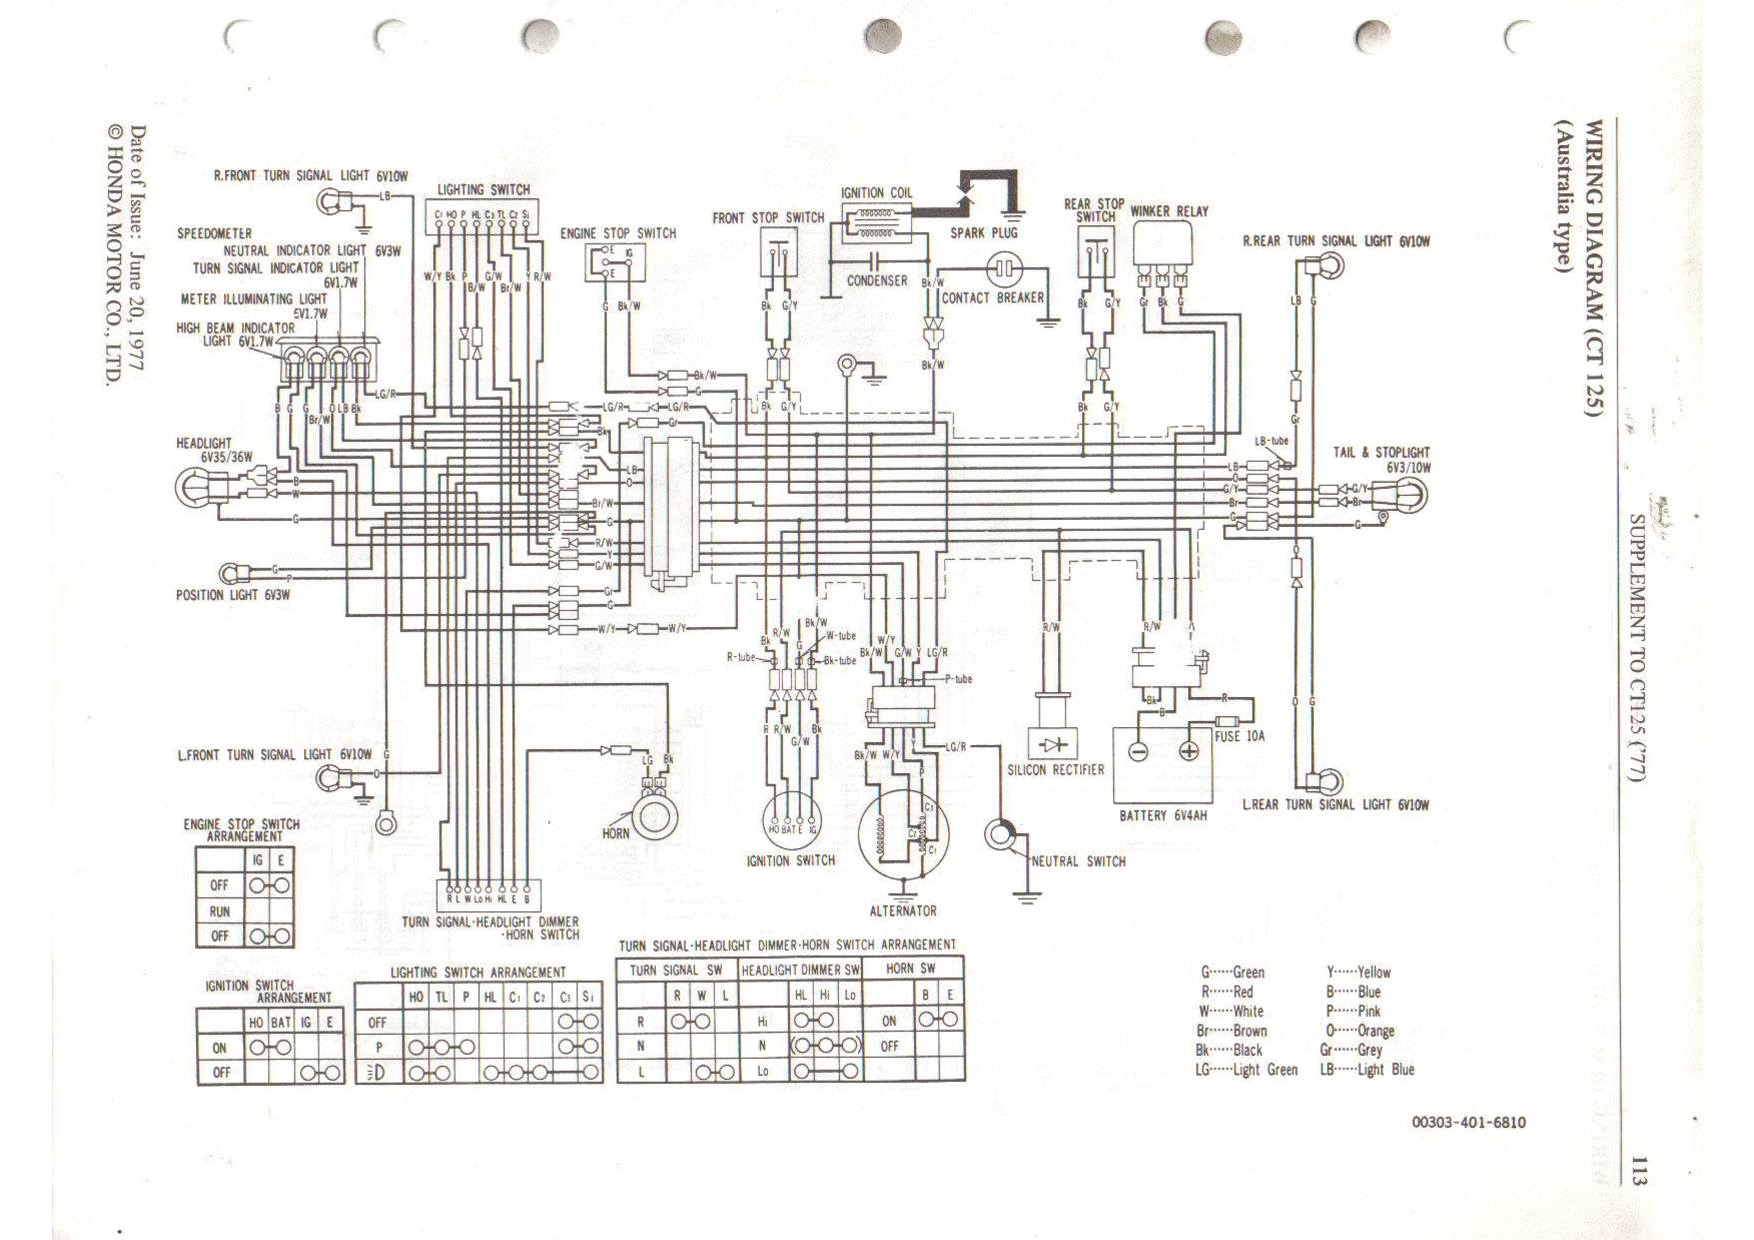 1983 Honda Goldwing Wiring Diagram Gl1000 Library 1977 Circuit Connection U2022 Cb350f